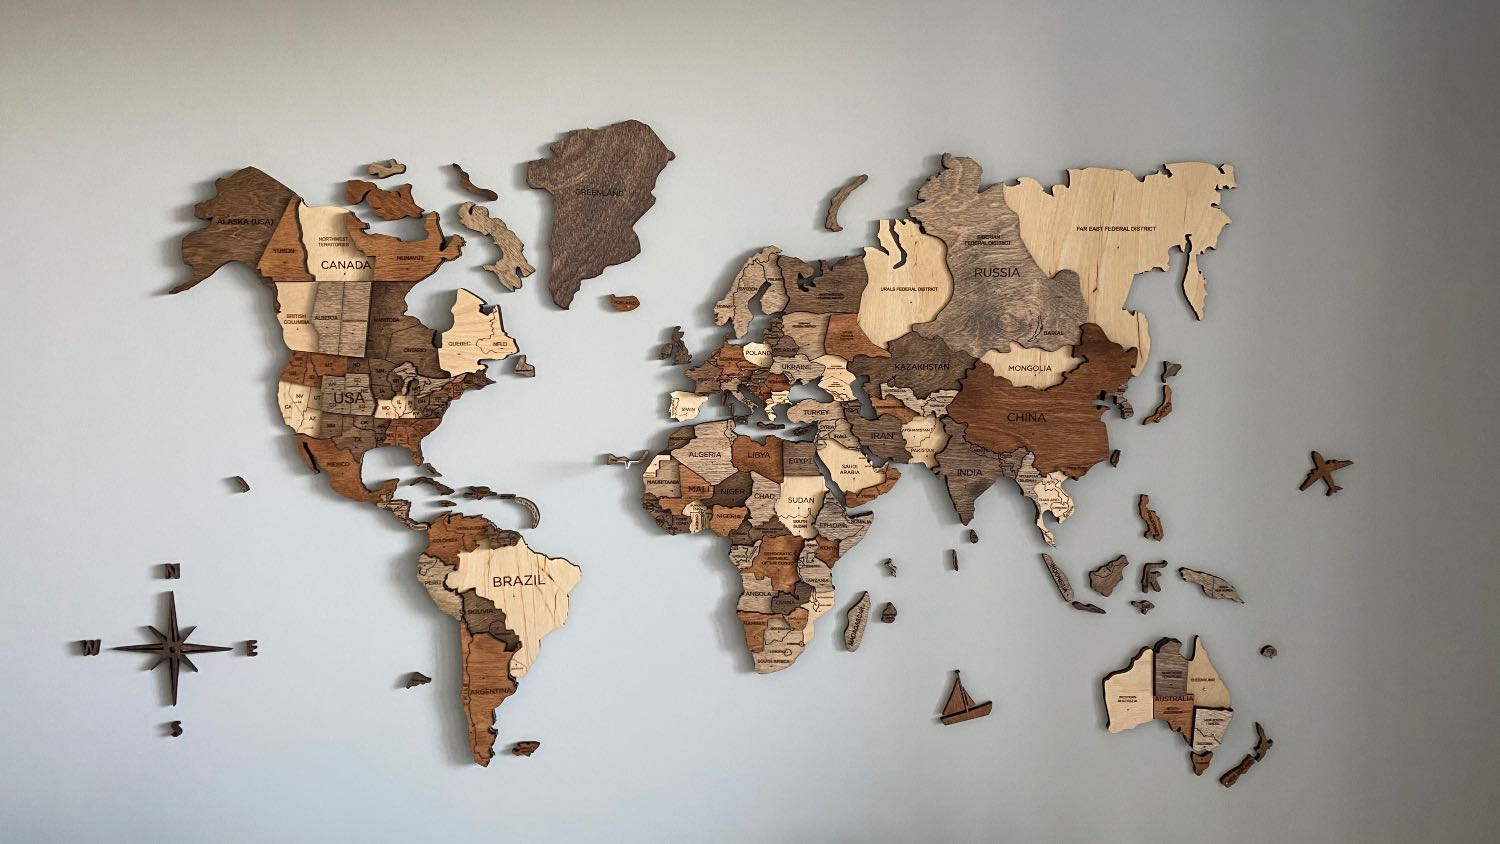 My physical travel world map